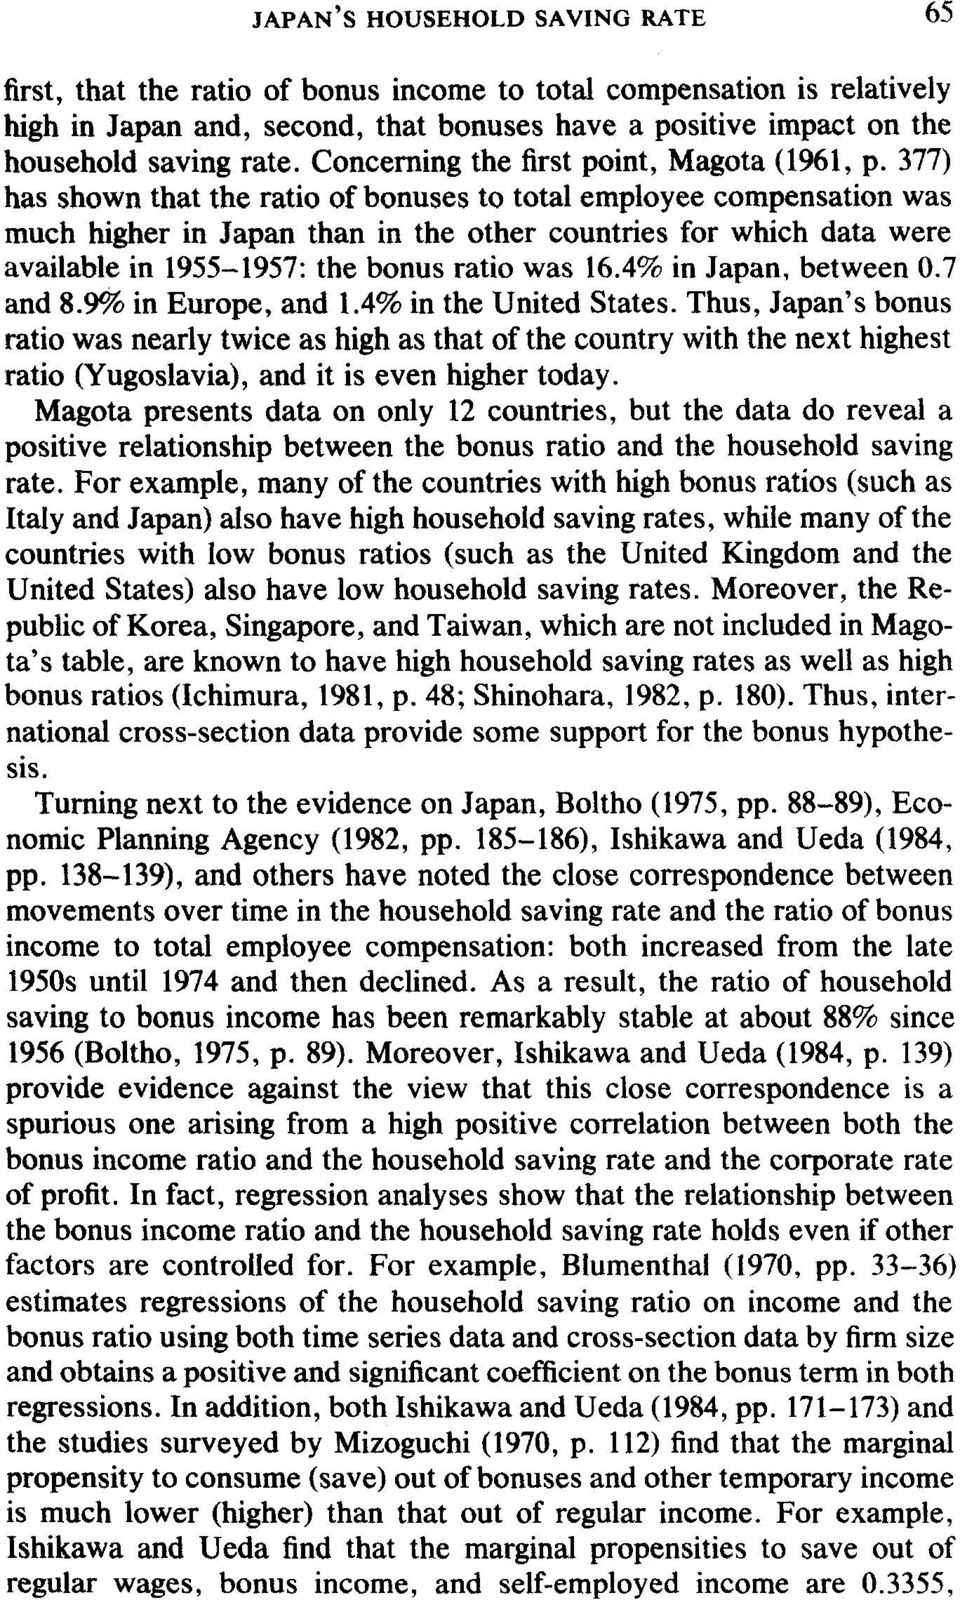 377) has shown that the ratio of bonuses to total employee compensation was much higher in Japan than in the other countries for which data were available in 1955-1957: the bonus ratio was 16.